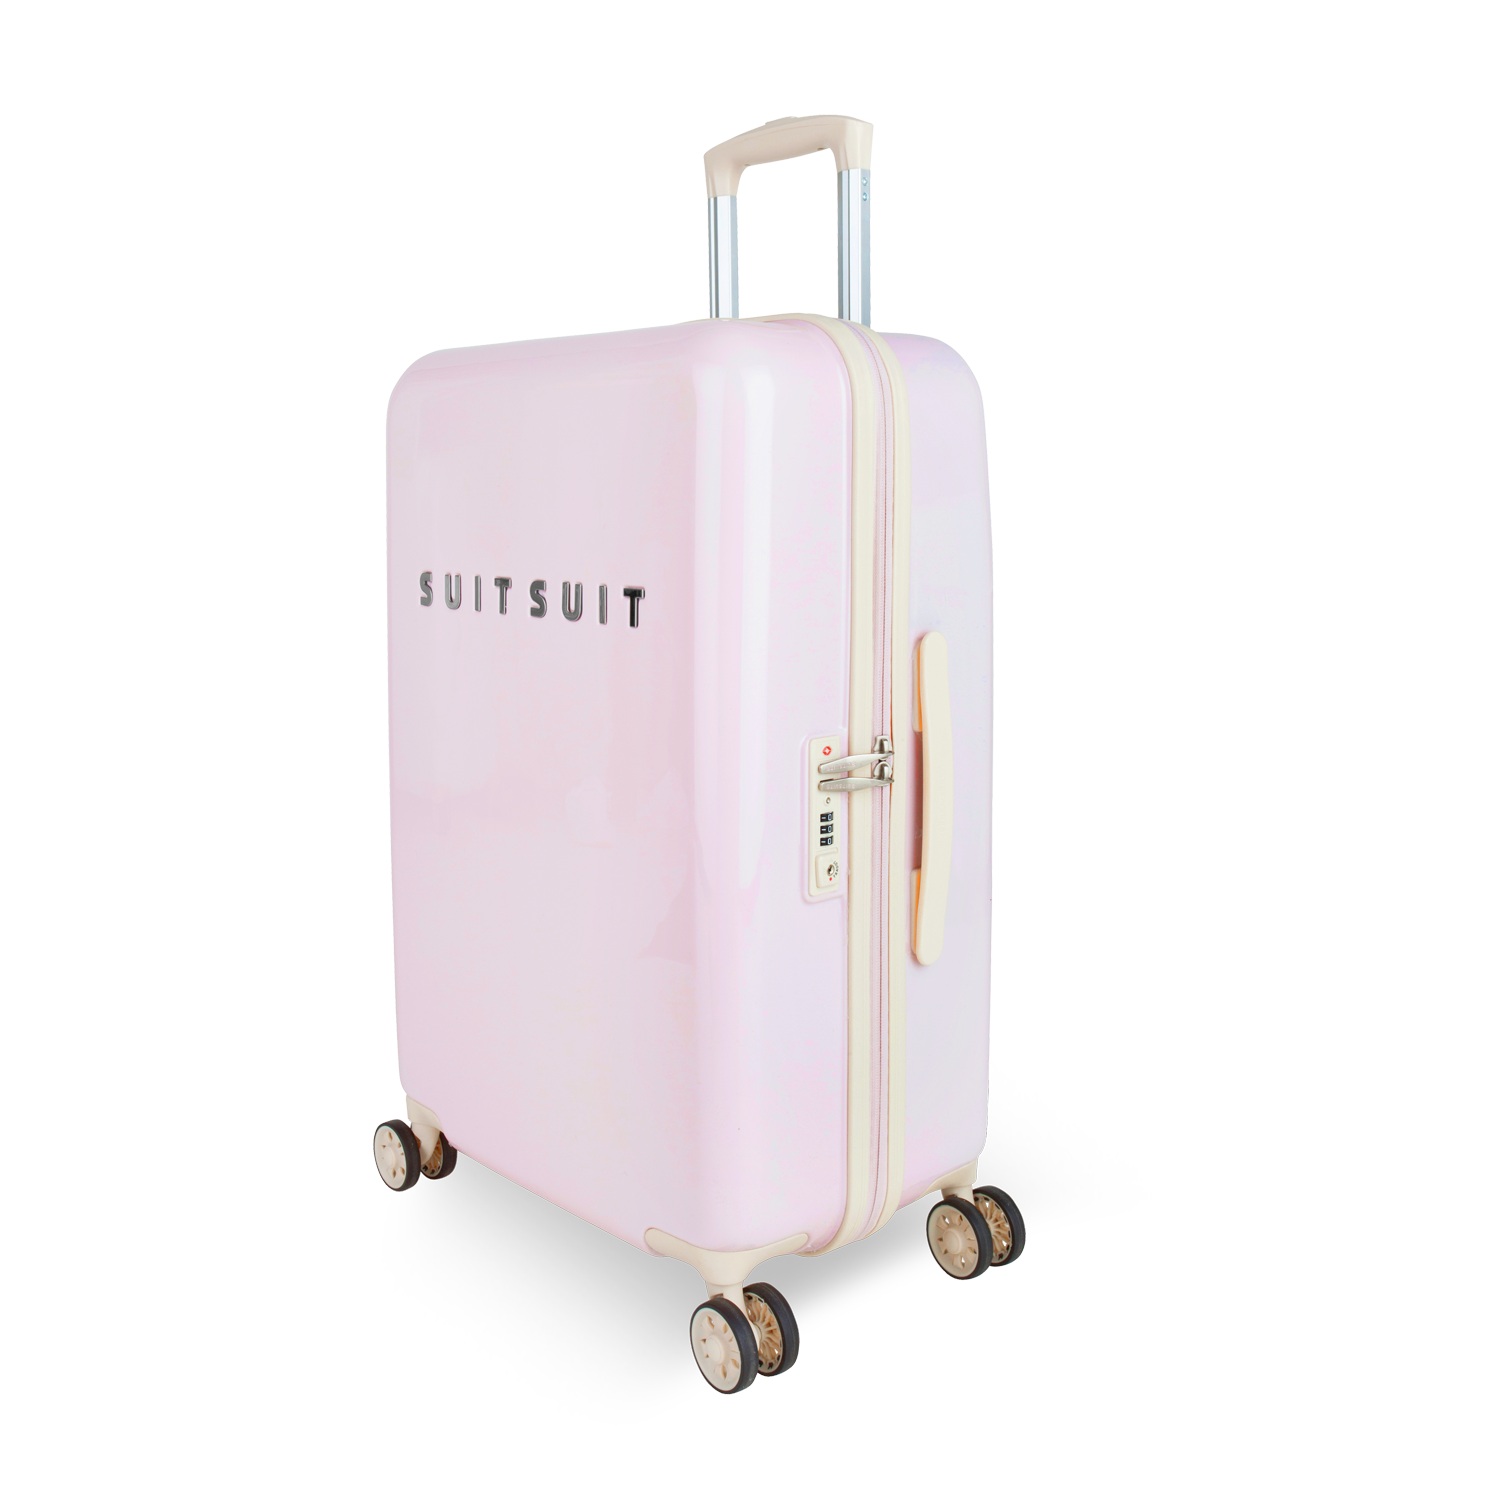 suitsuit fabulous fifties trolley 67 cm spinner pink dust jetzt online kaufen bei. Black Bedroom Furniture Sets. Home Design Ideas